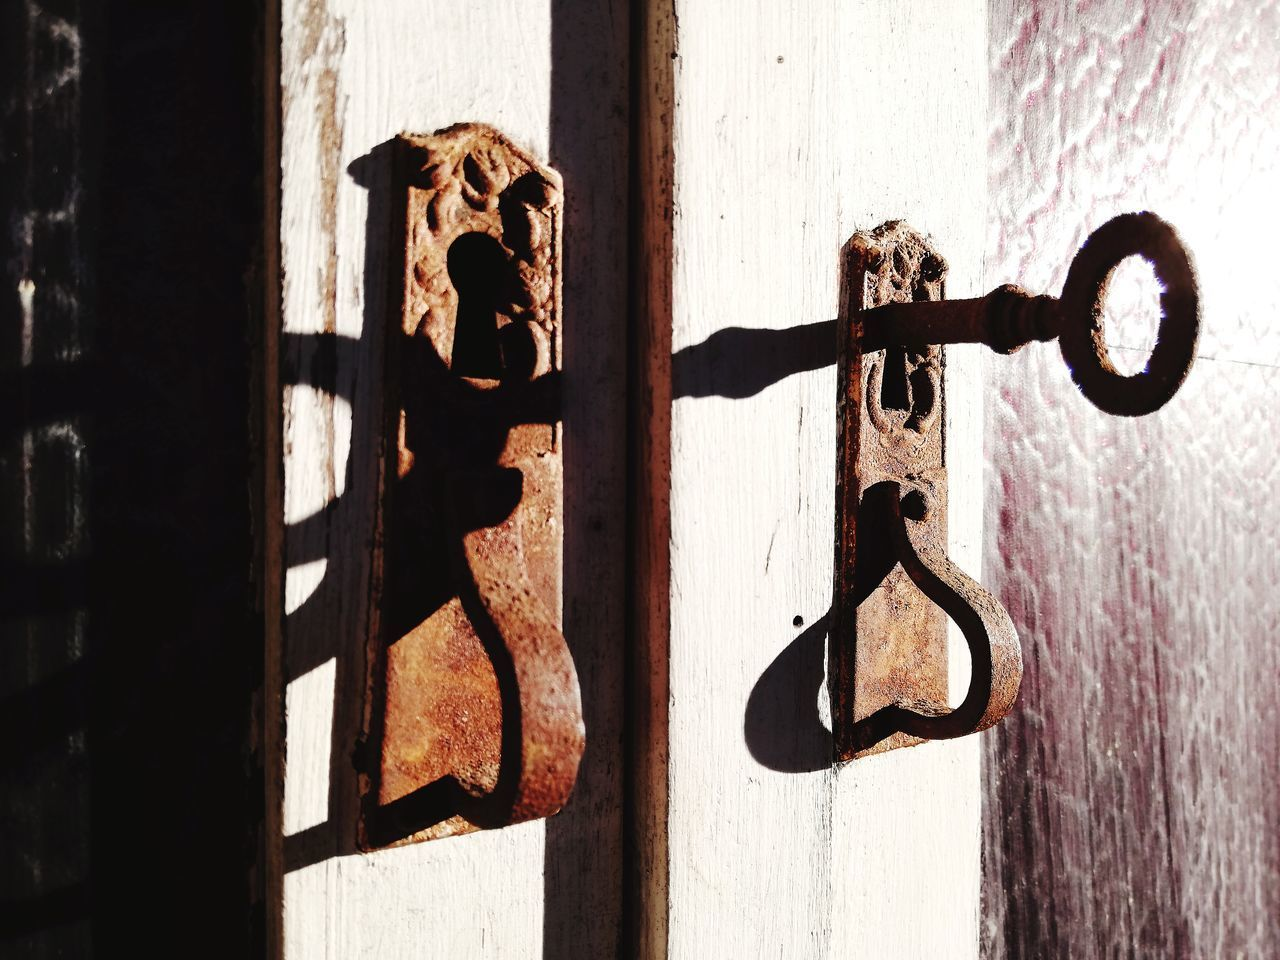 CLOSE-UP OF CLOSED DOOR KNOCKER ON WOODEN WALL